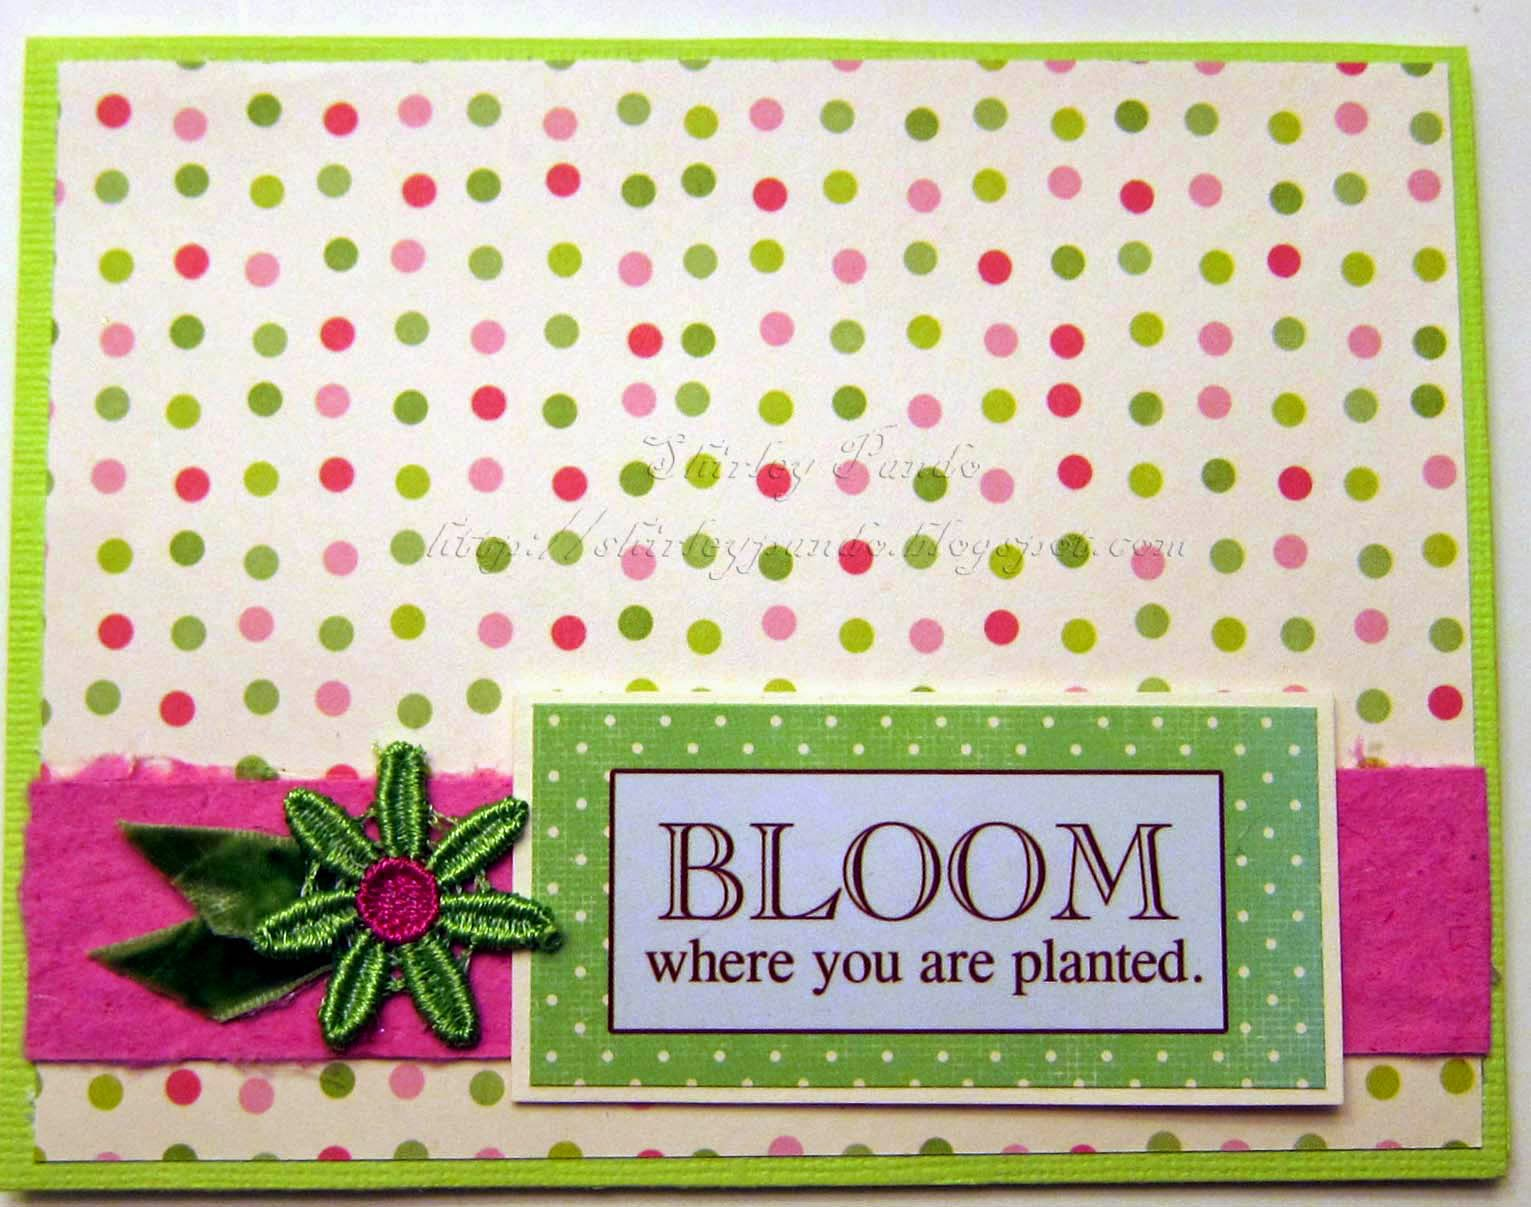 Bloom card